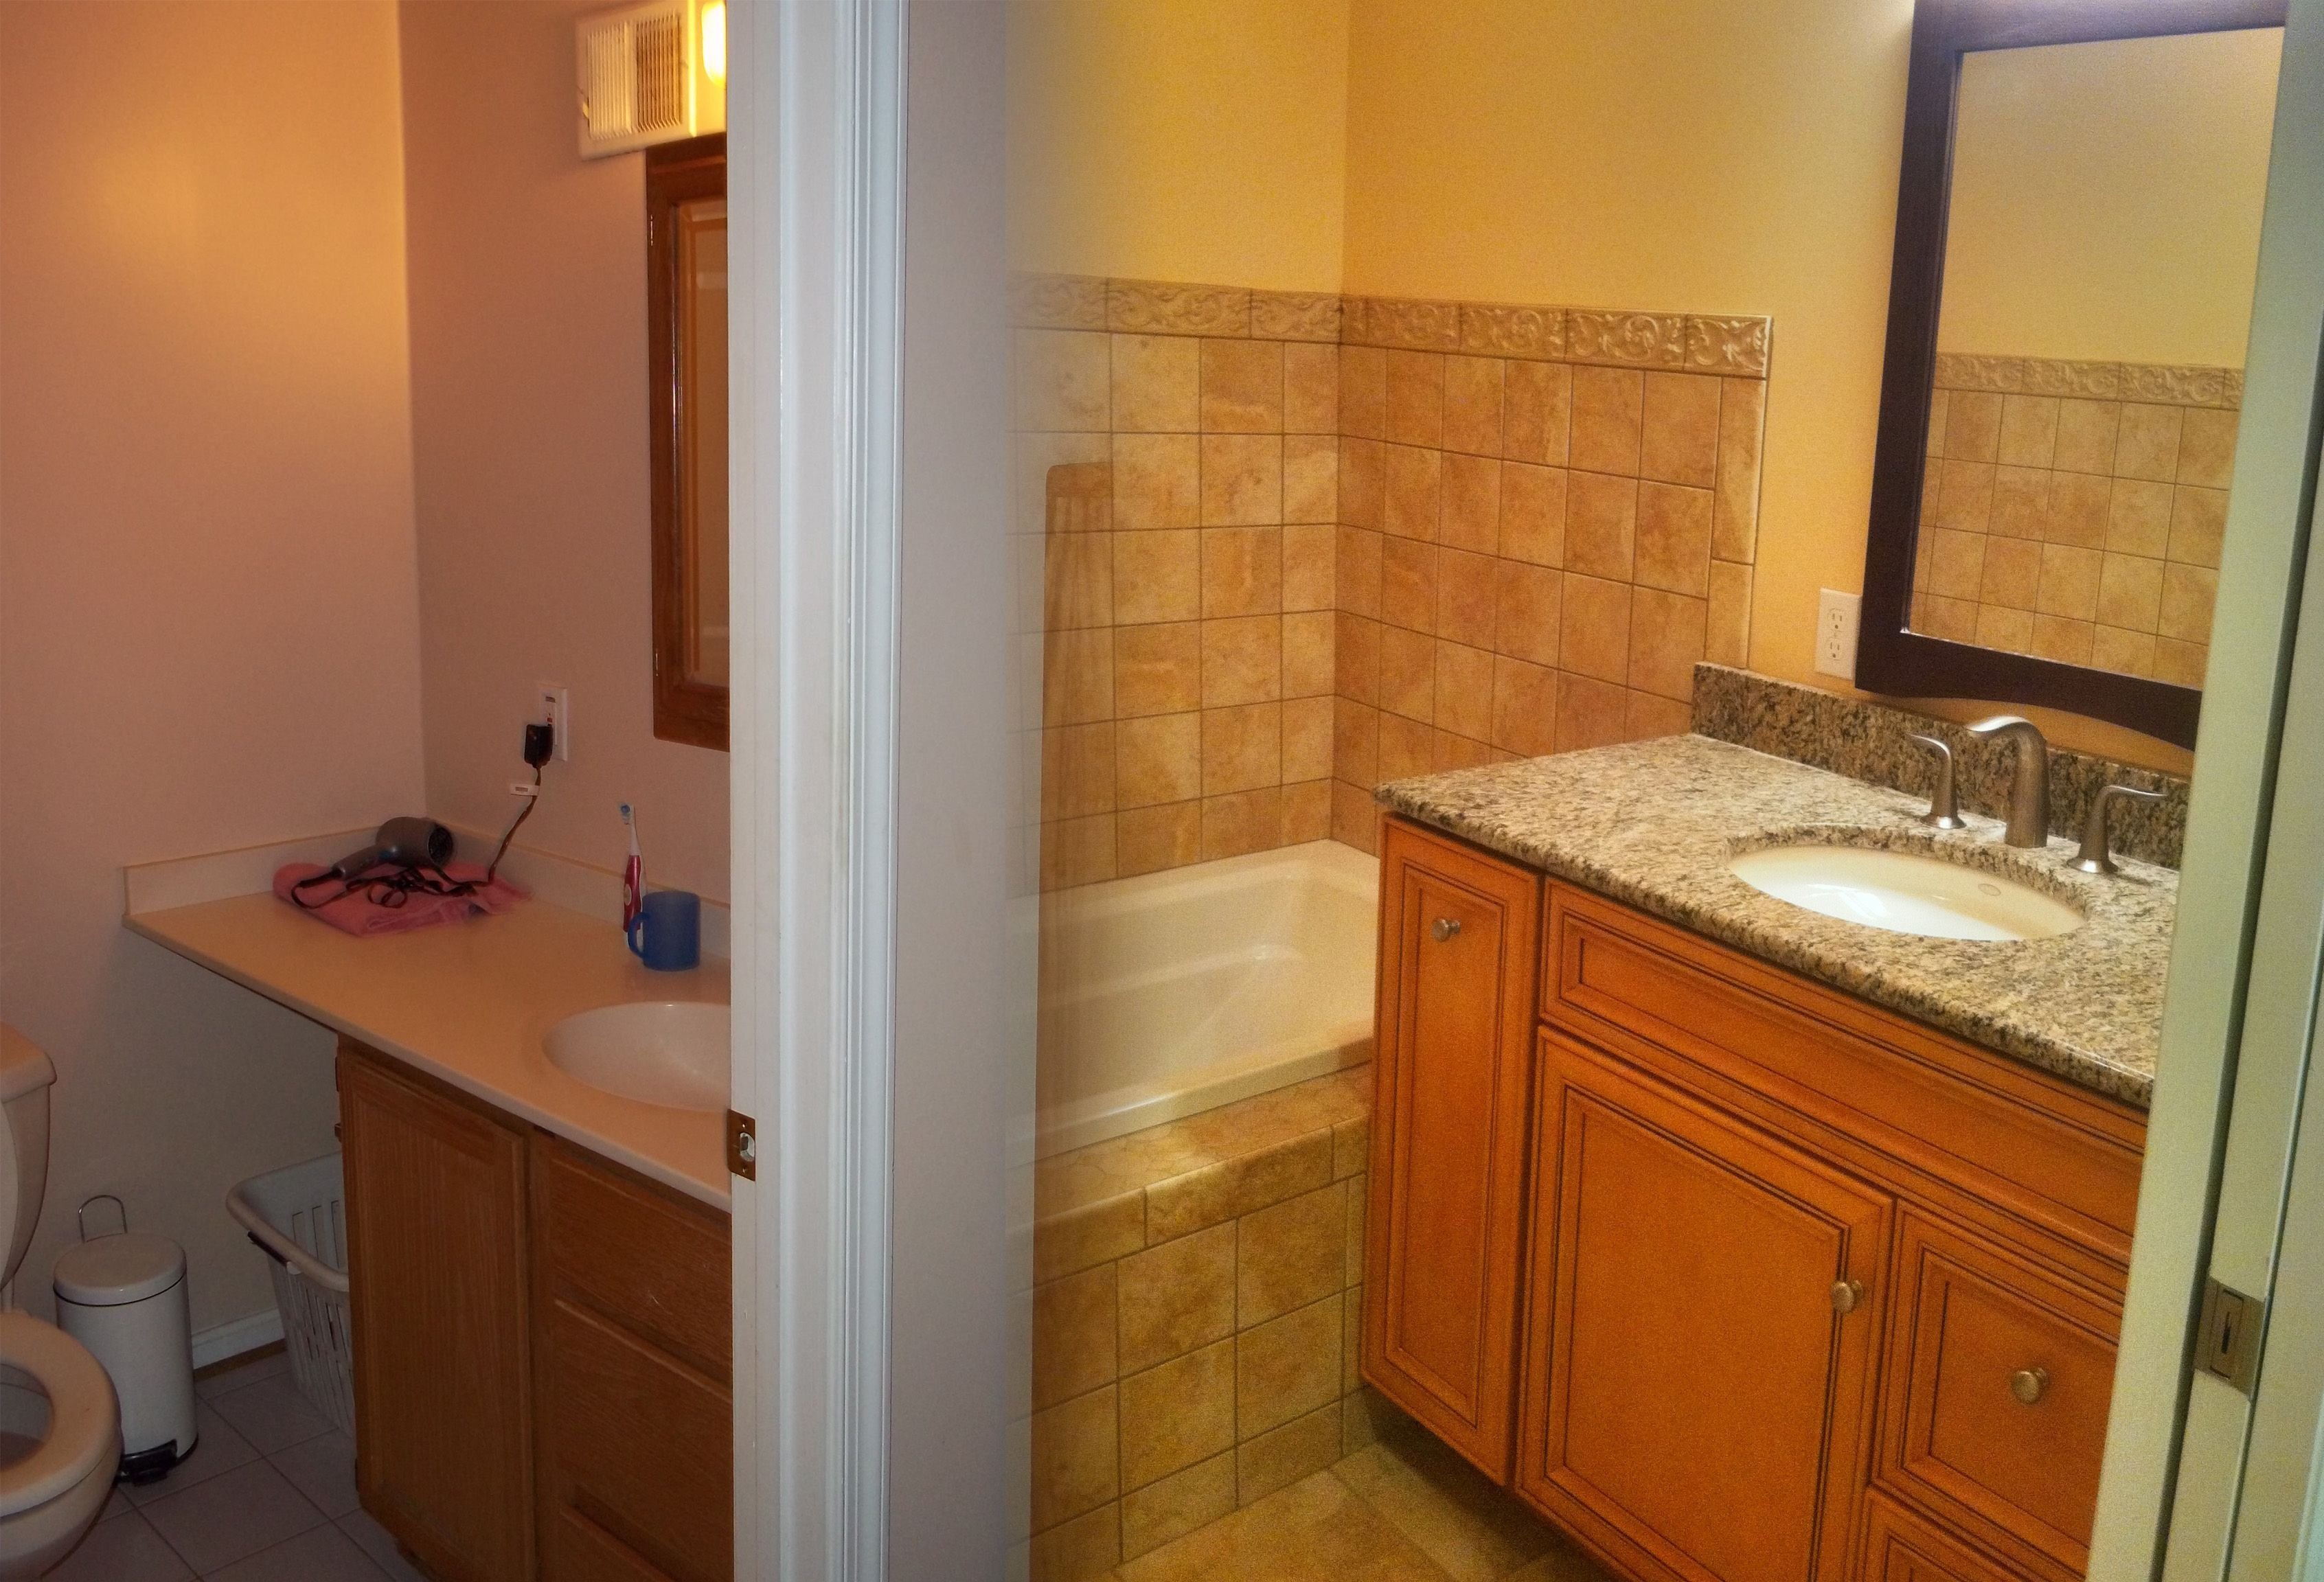 Bathroom Remodel Photos Before And After Particularly As It Pertains To The Resale Value Of A Property A Toilet Is Most Lik